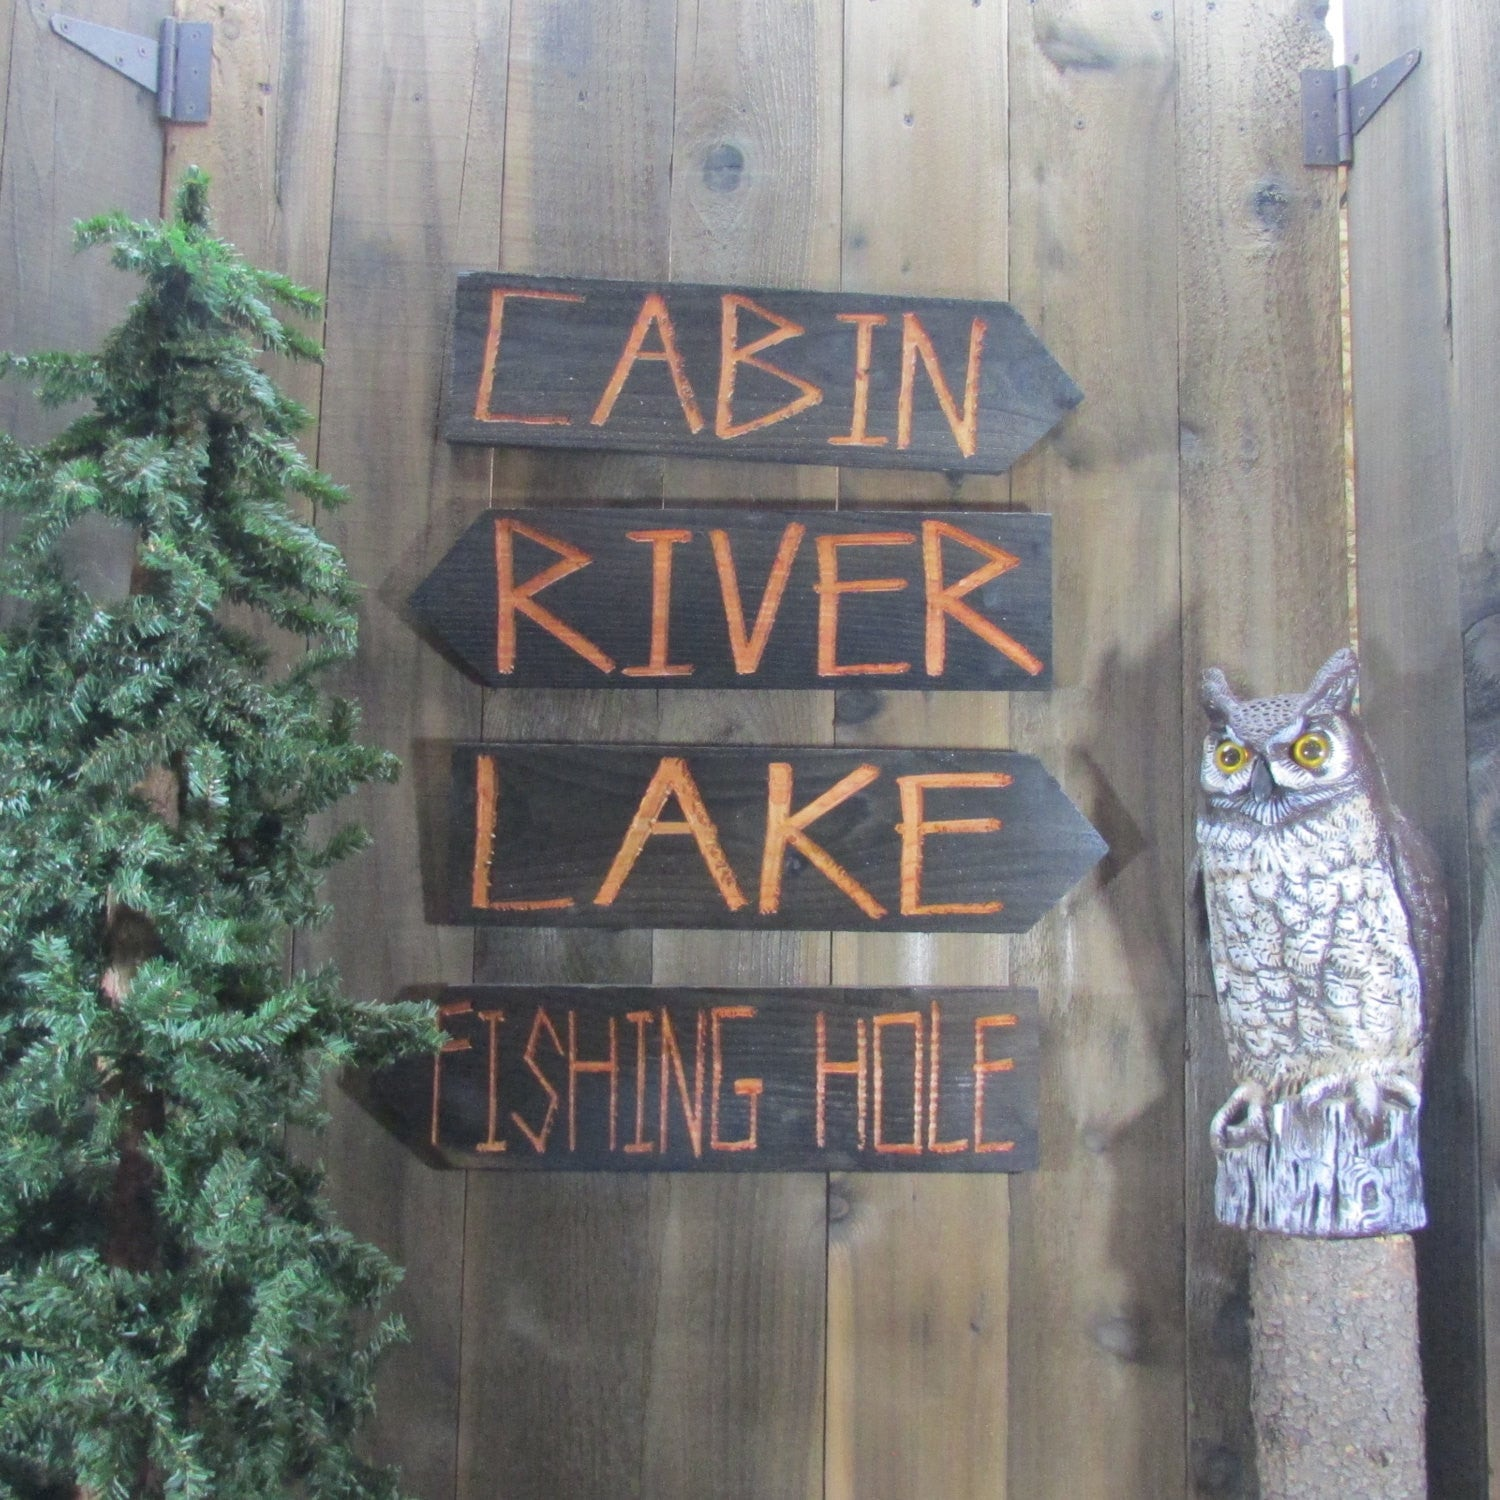 Cabin River Lake Fishing Hole Directional Lawn Ornament Sign - Carved Cedar Wood